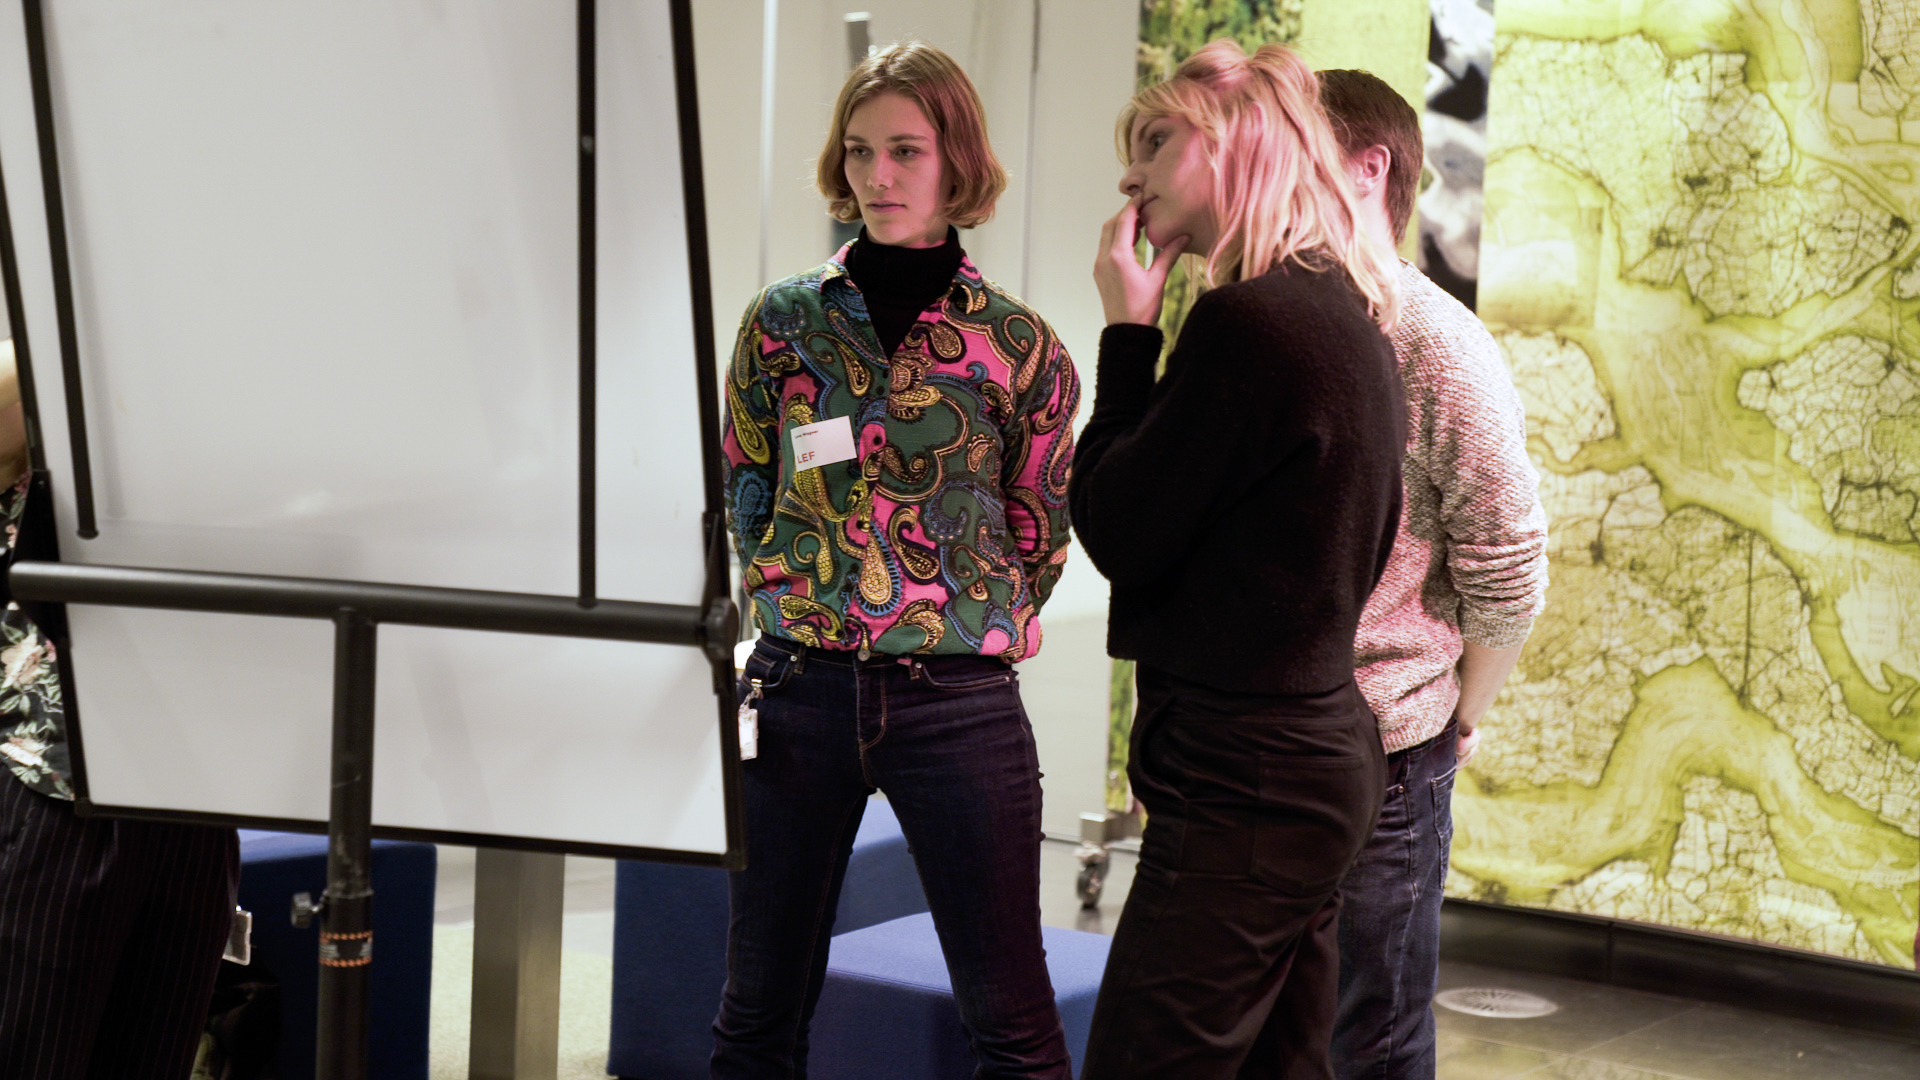 Lena as a lecturer guiding a workshop with the client.